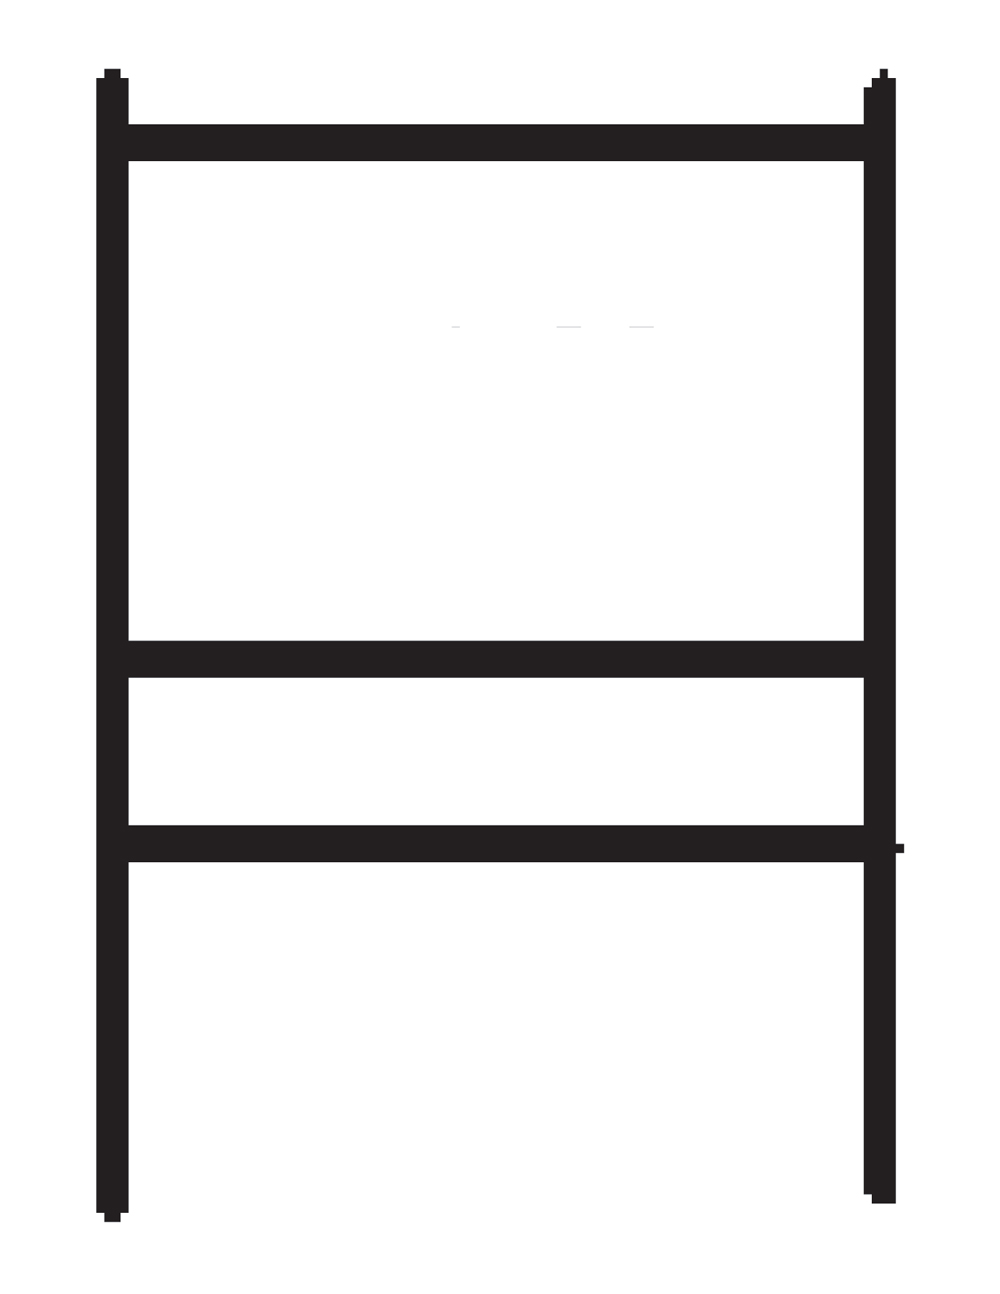 quick signs by lynch signs sign templates by lynch signs. Black Bedroom Furniture Sets. Home Design Ideas